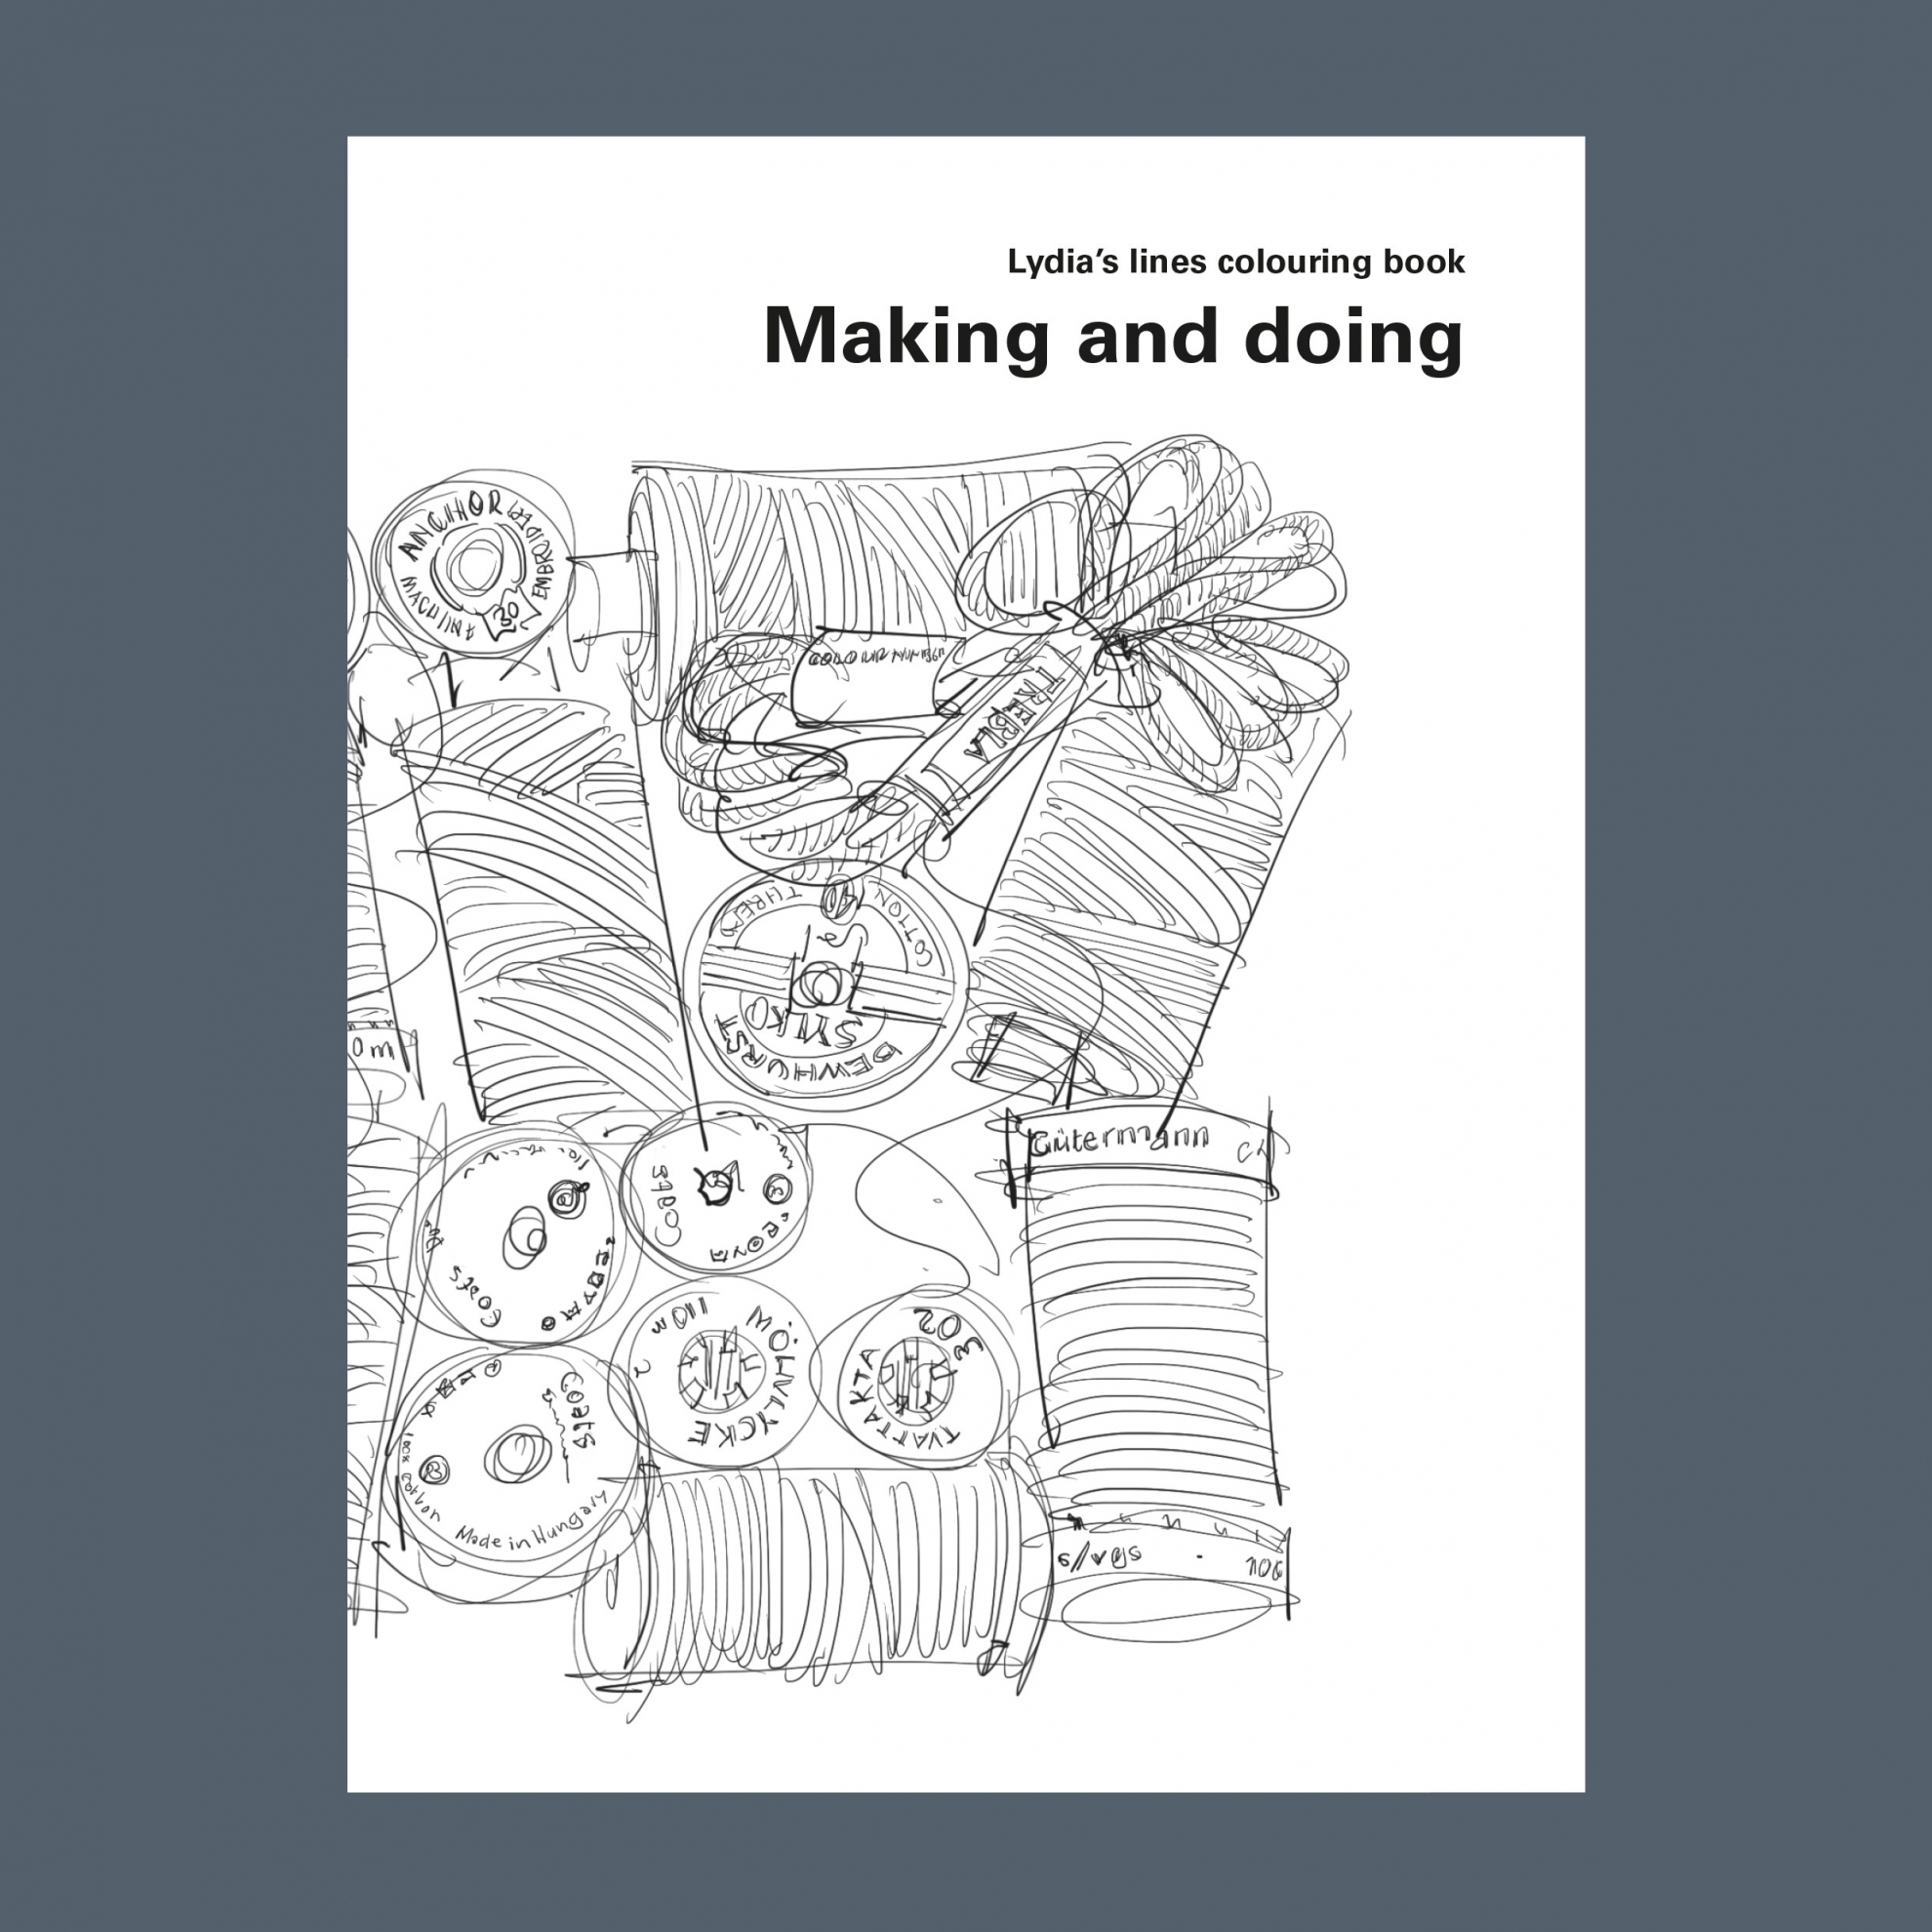 Lydia Thornley colouring book - Making and doing (cover)